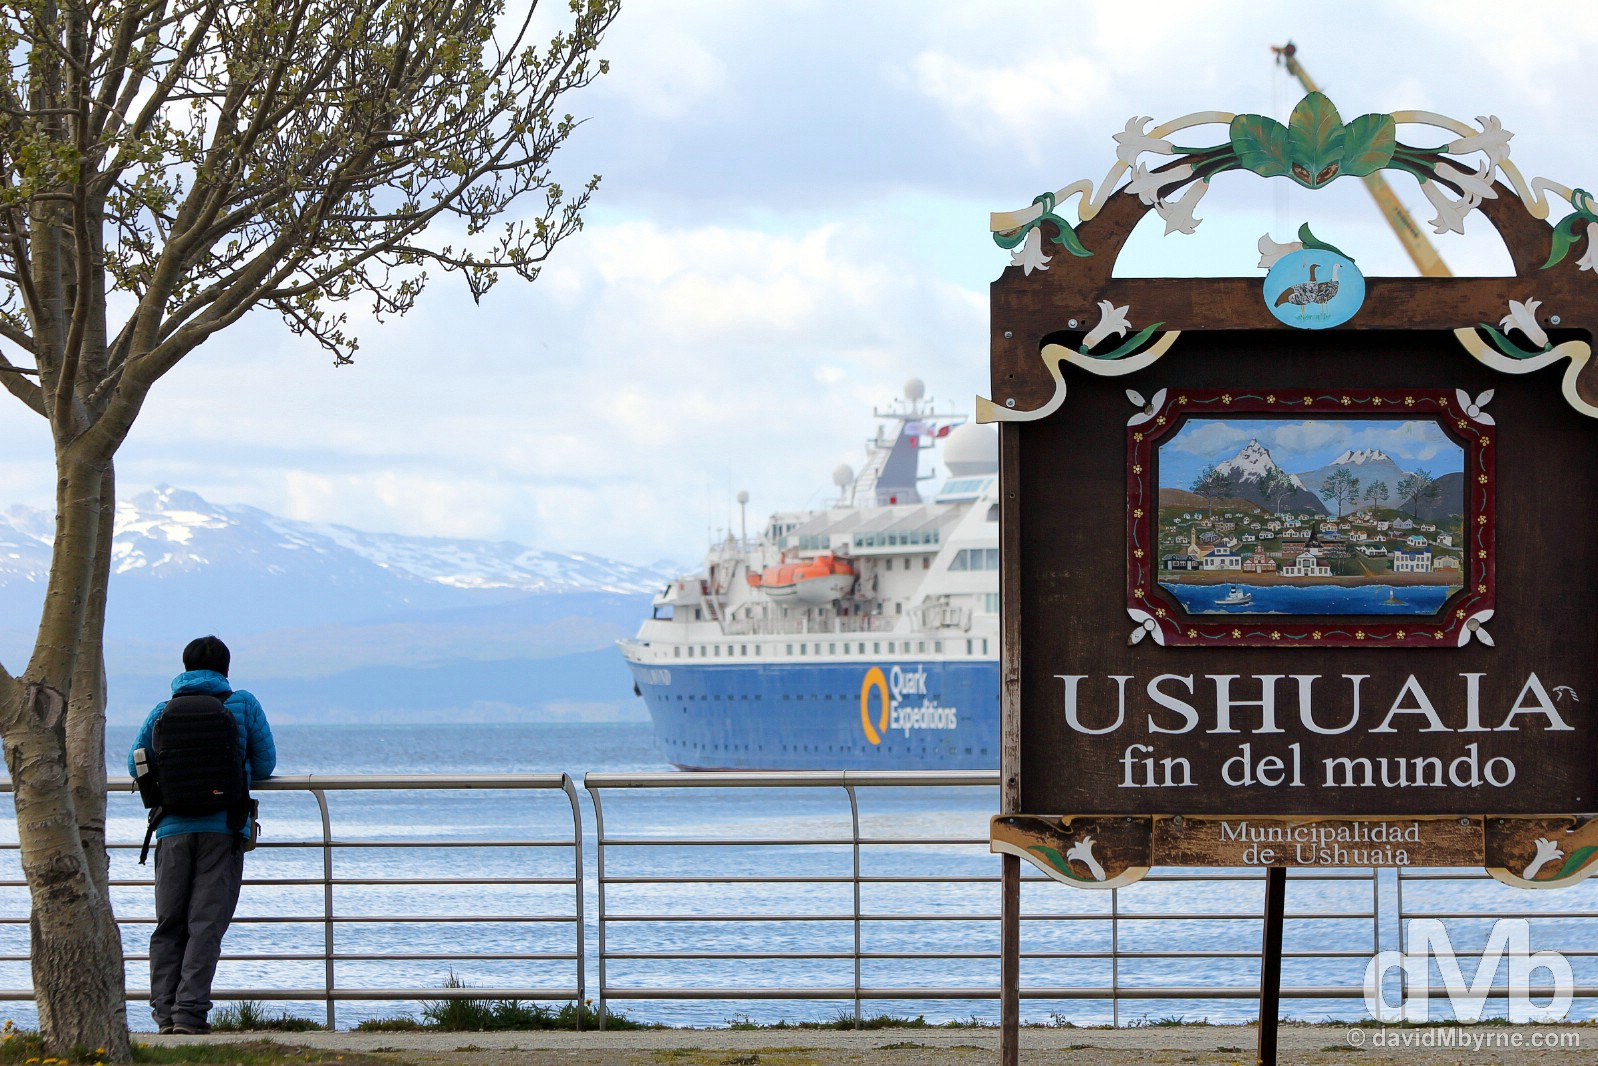 Ushuaia, Fin del Mundo (the End of the World), Tierra del Fuego, Argentina. November 15, 2015.